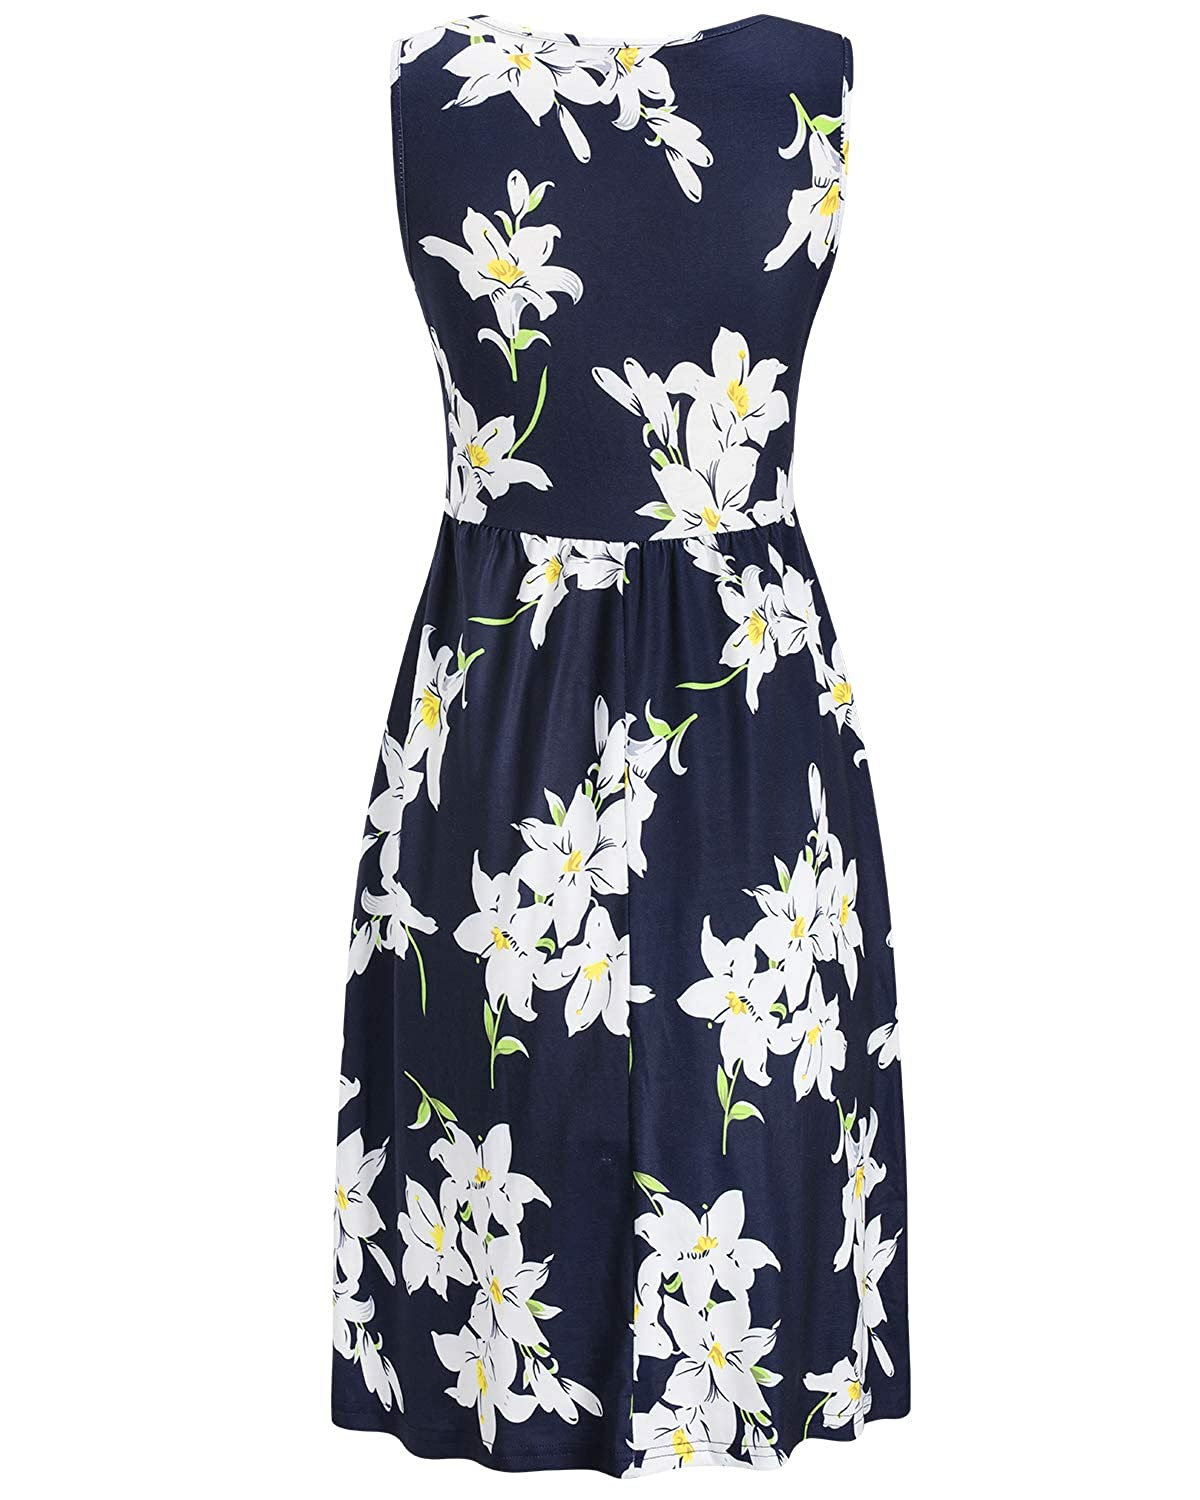 OUGES Womens Sleeveless Summer Floral Maternity Dresses Nursing Breastfeeding Clothes